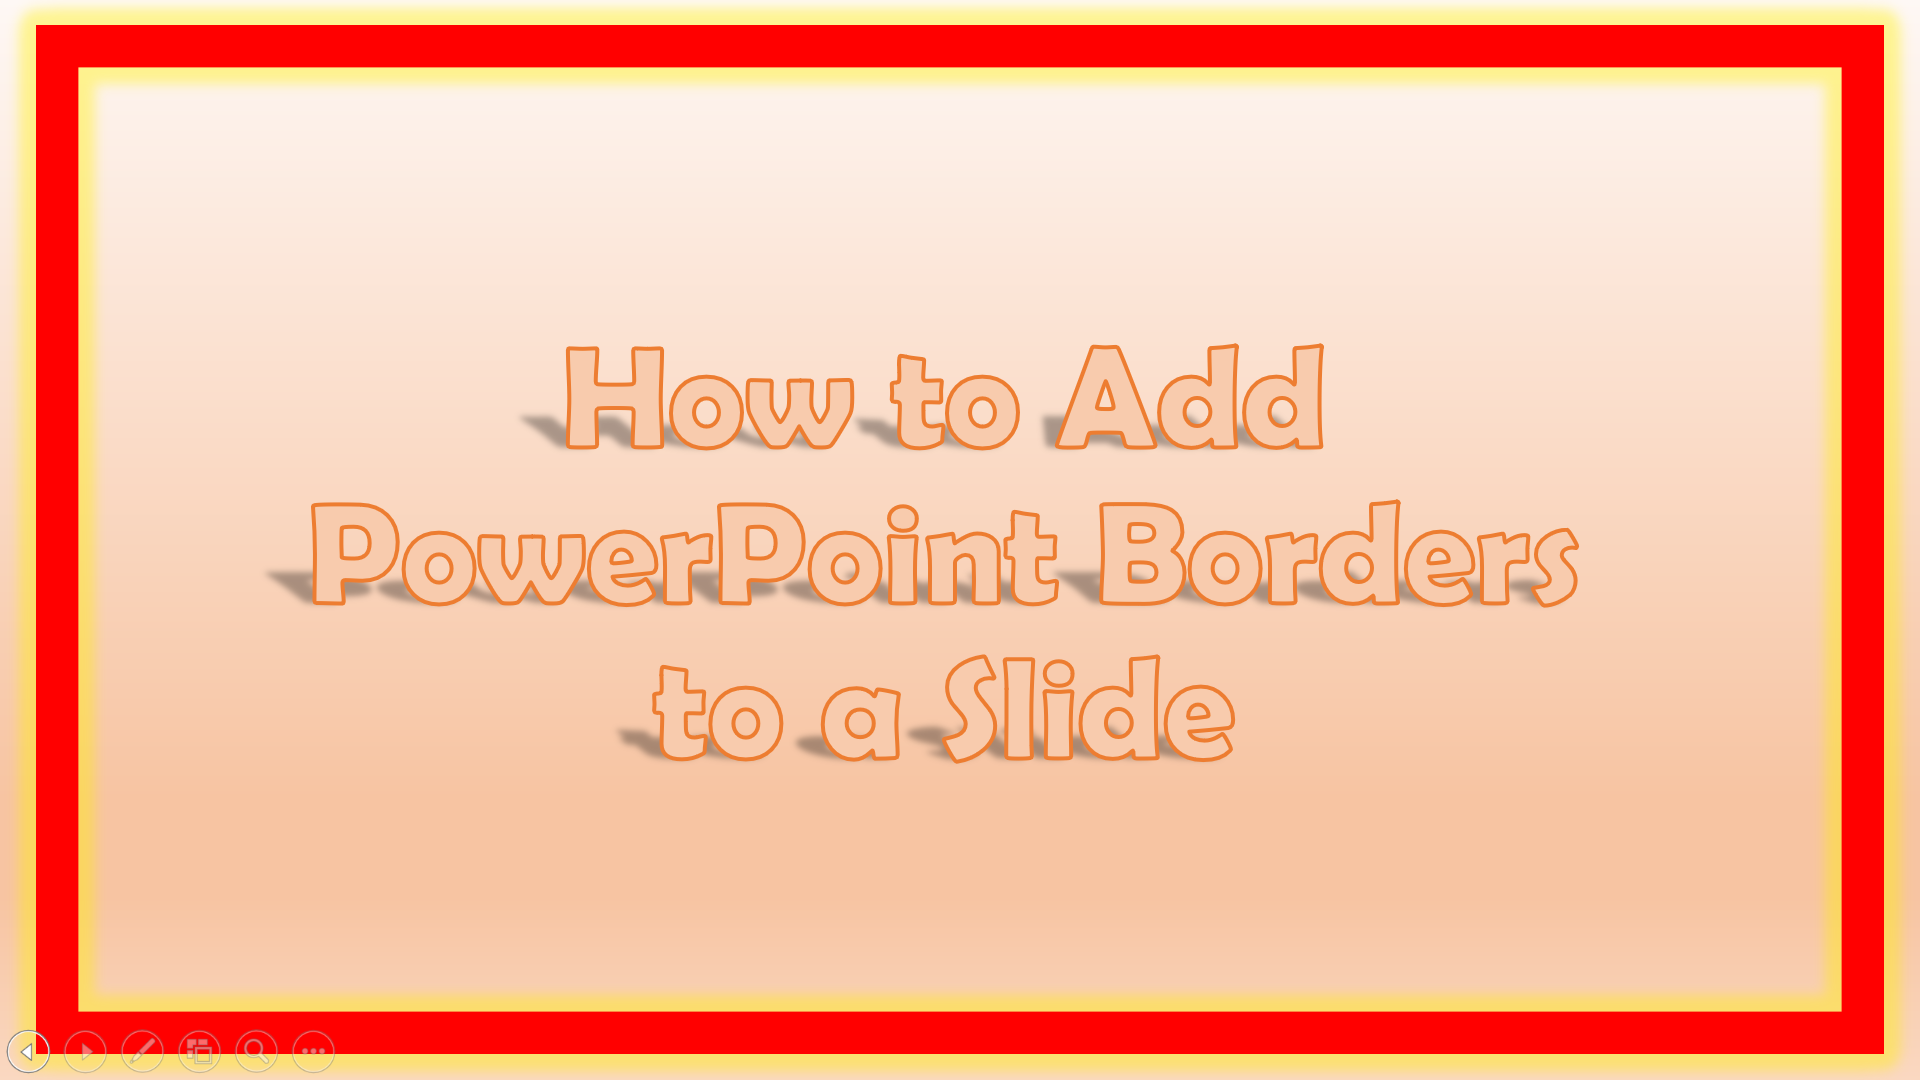 How to Add Powerpoint Borders to a Slide